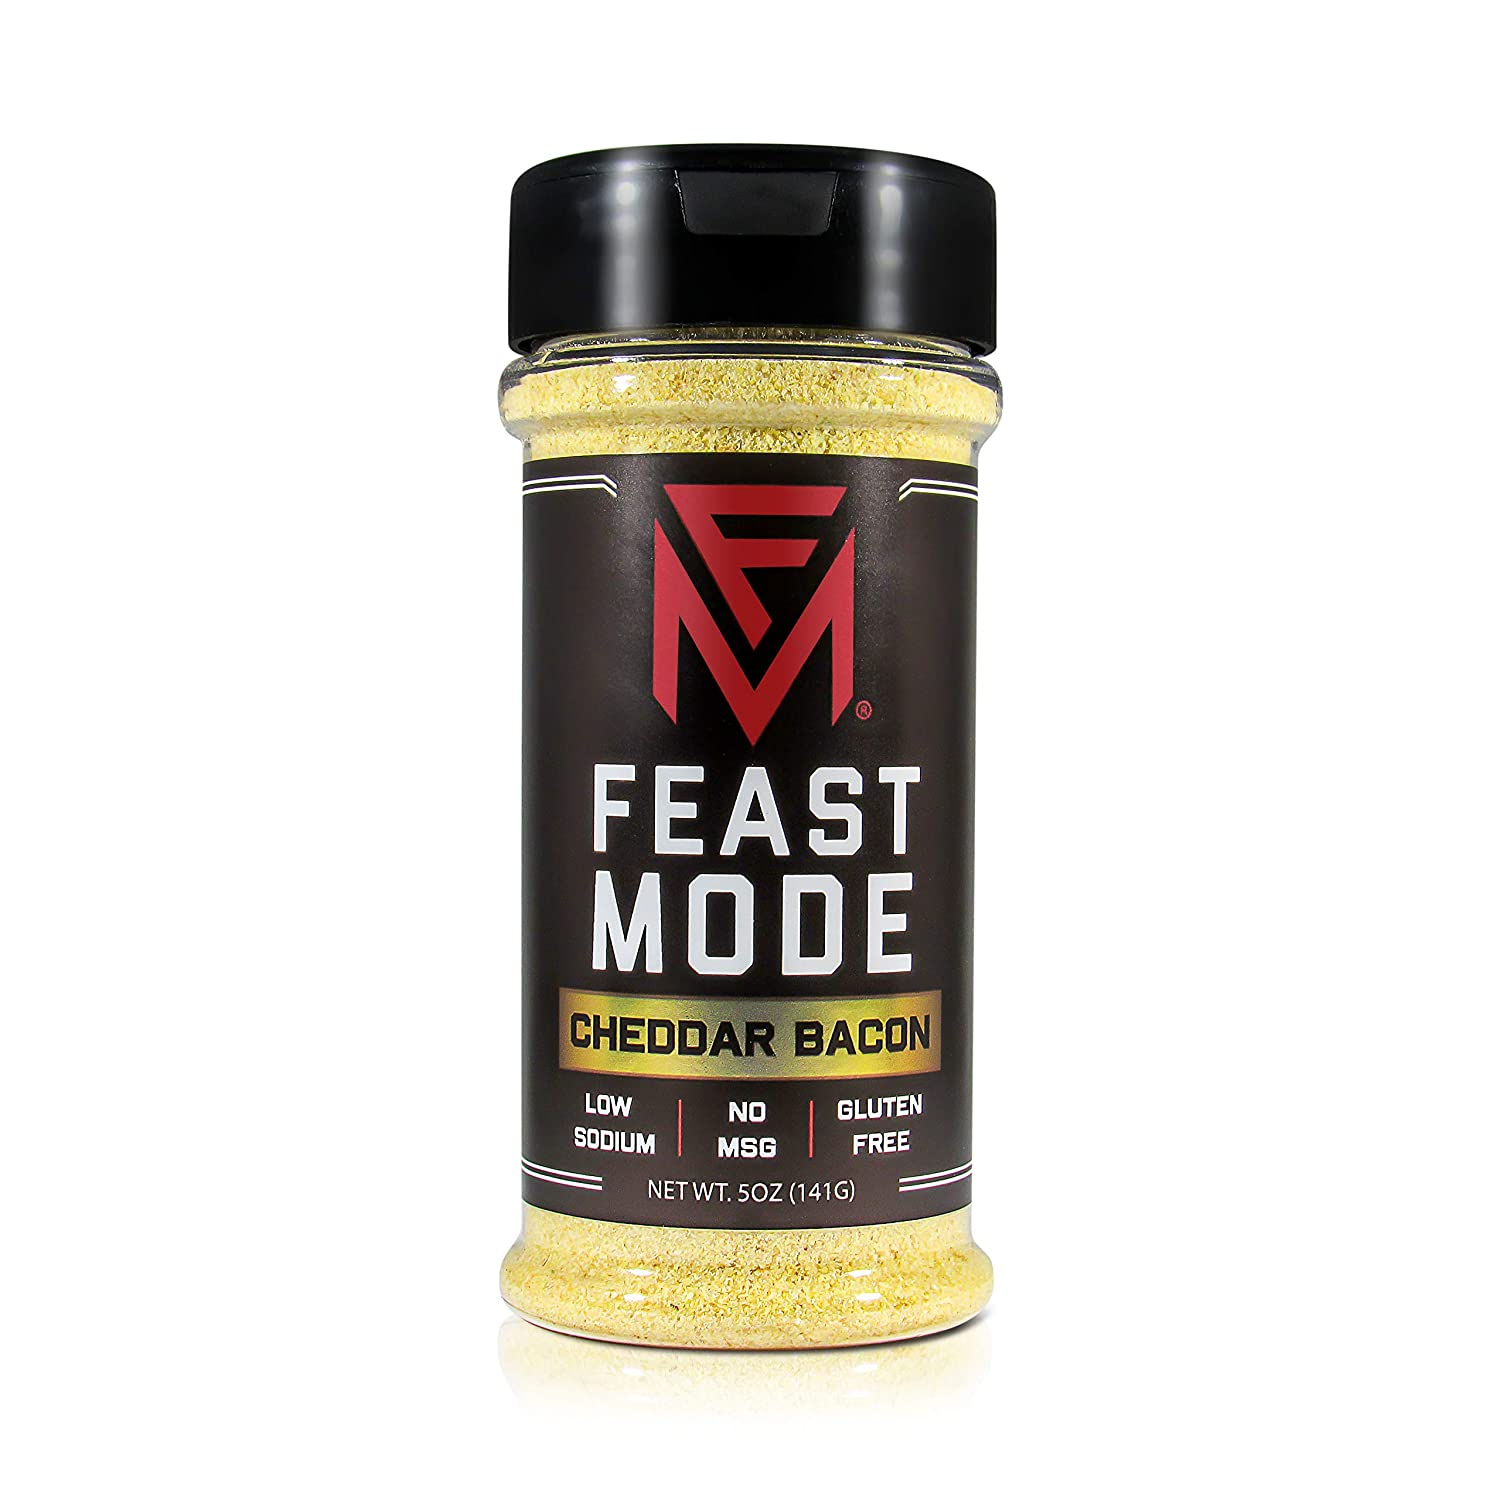 Cheddar Bacon - Feast Mode Flavors - Low Sodium, No MSG, Gluten Free, All Natural, Meal Prep Seasoning , Healthy , Smokey Flavor